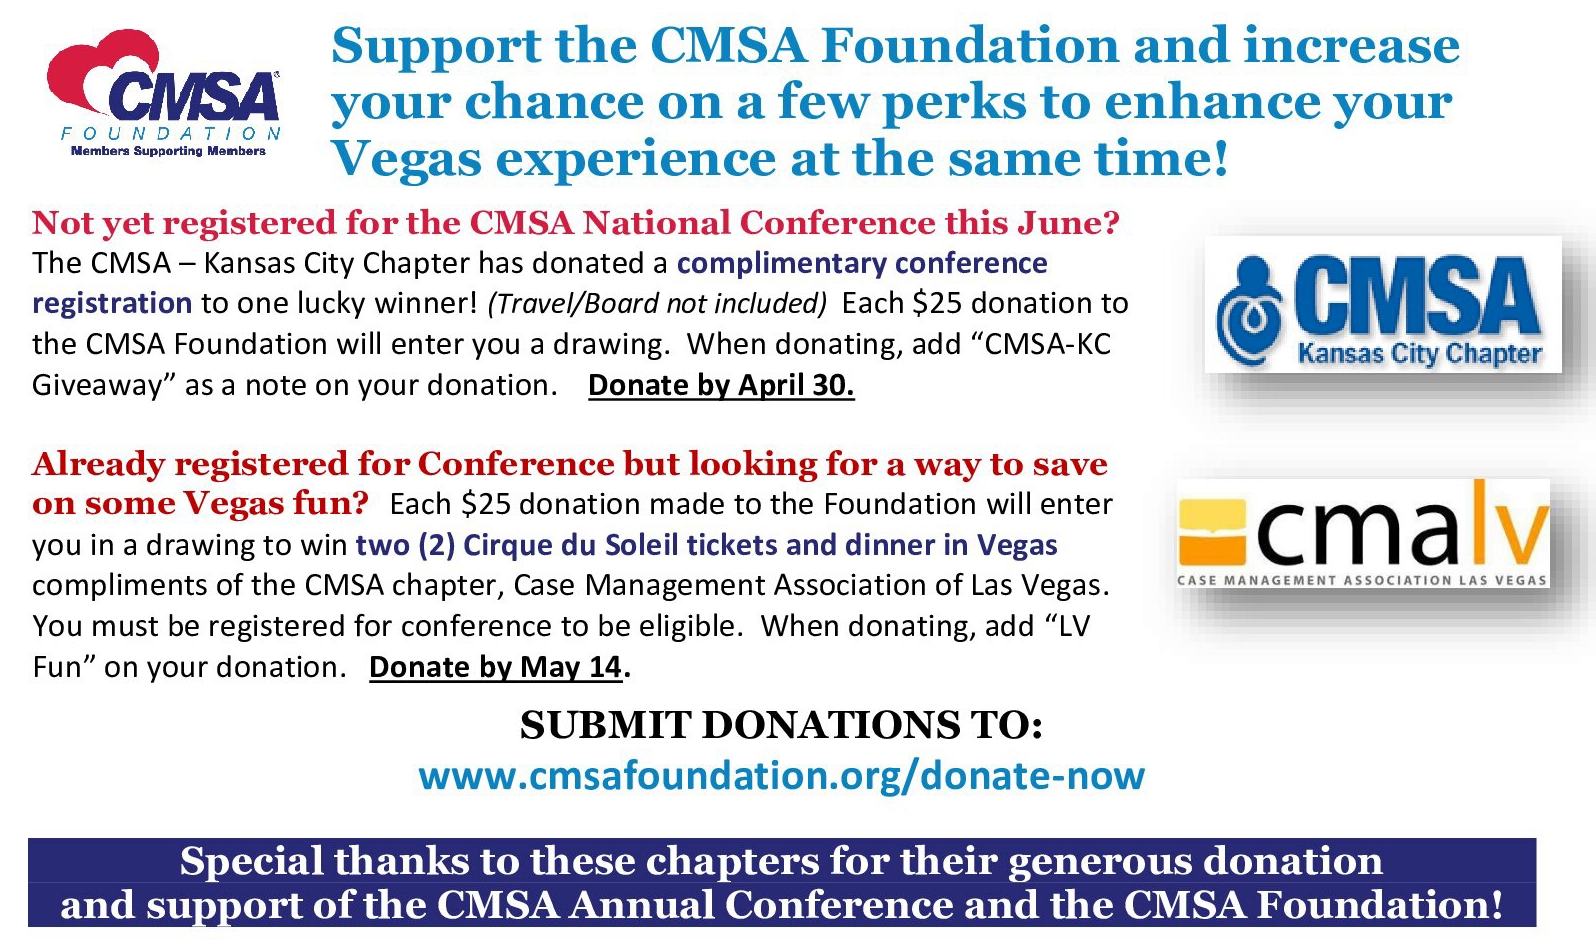 Many thanks to these chapters for their support in donating giveaways!